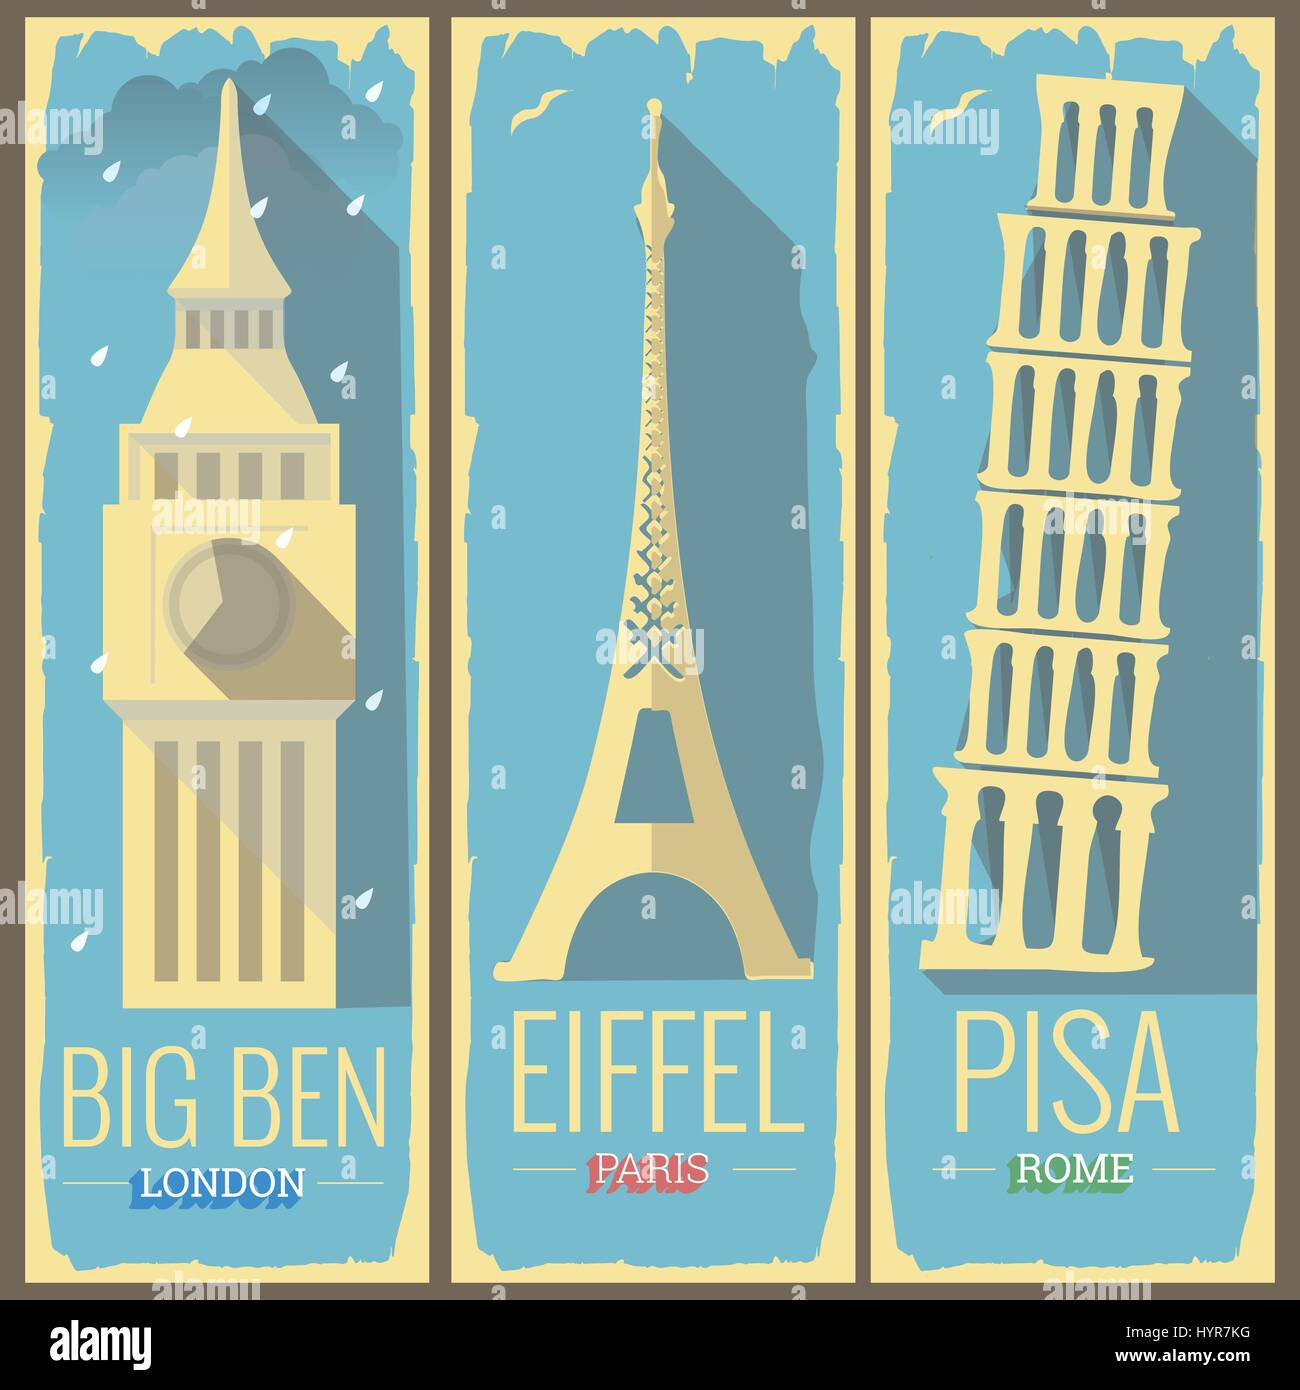 big ben tower london, eiffel tower paris and pisa tower rome icon style illustrations on retro vintage poster postcard - Stock Vector